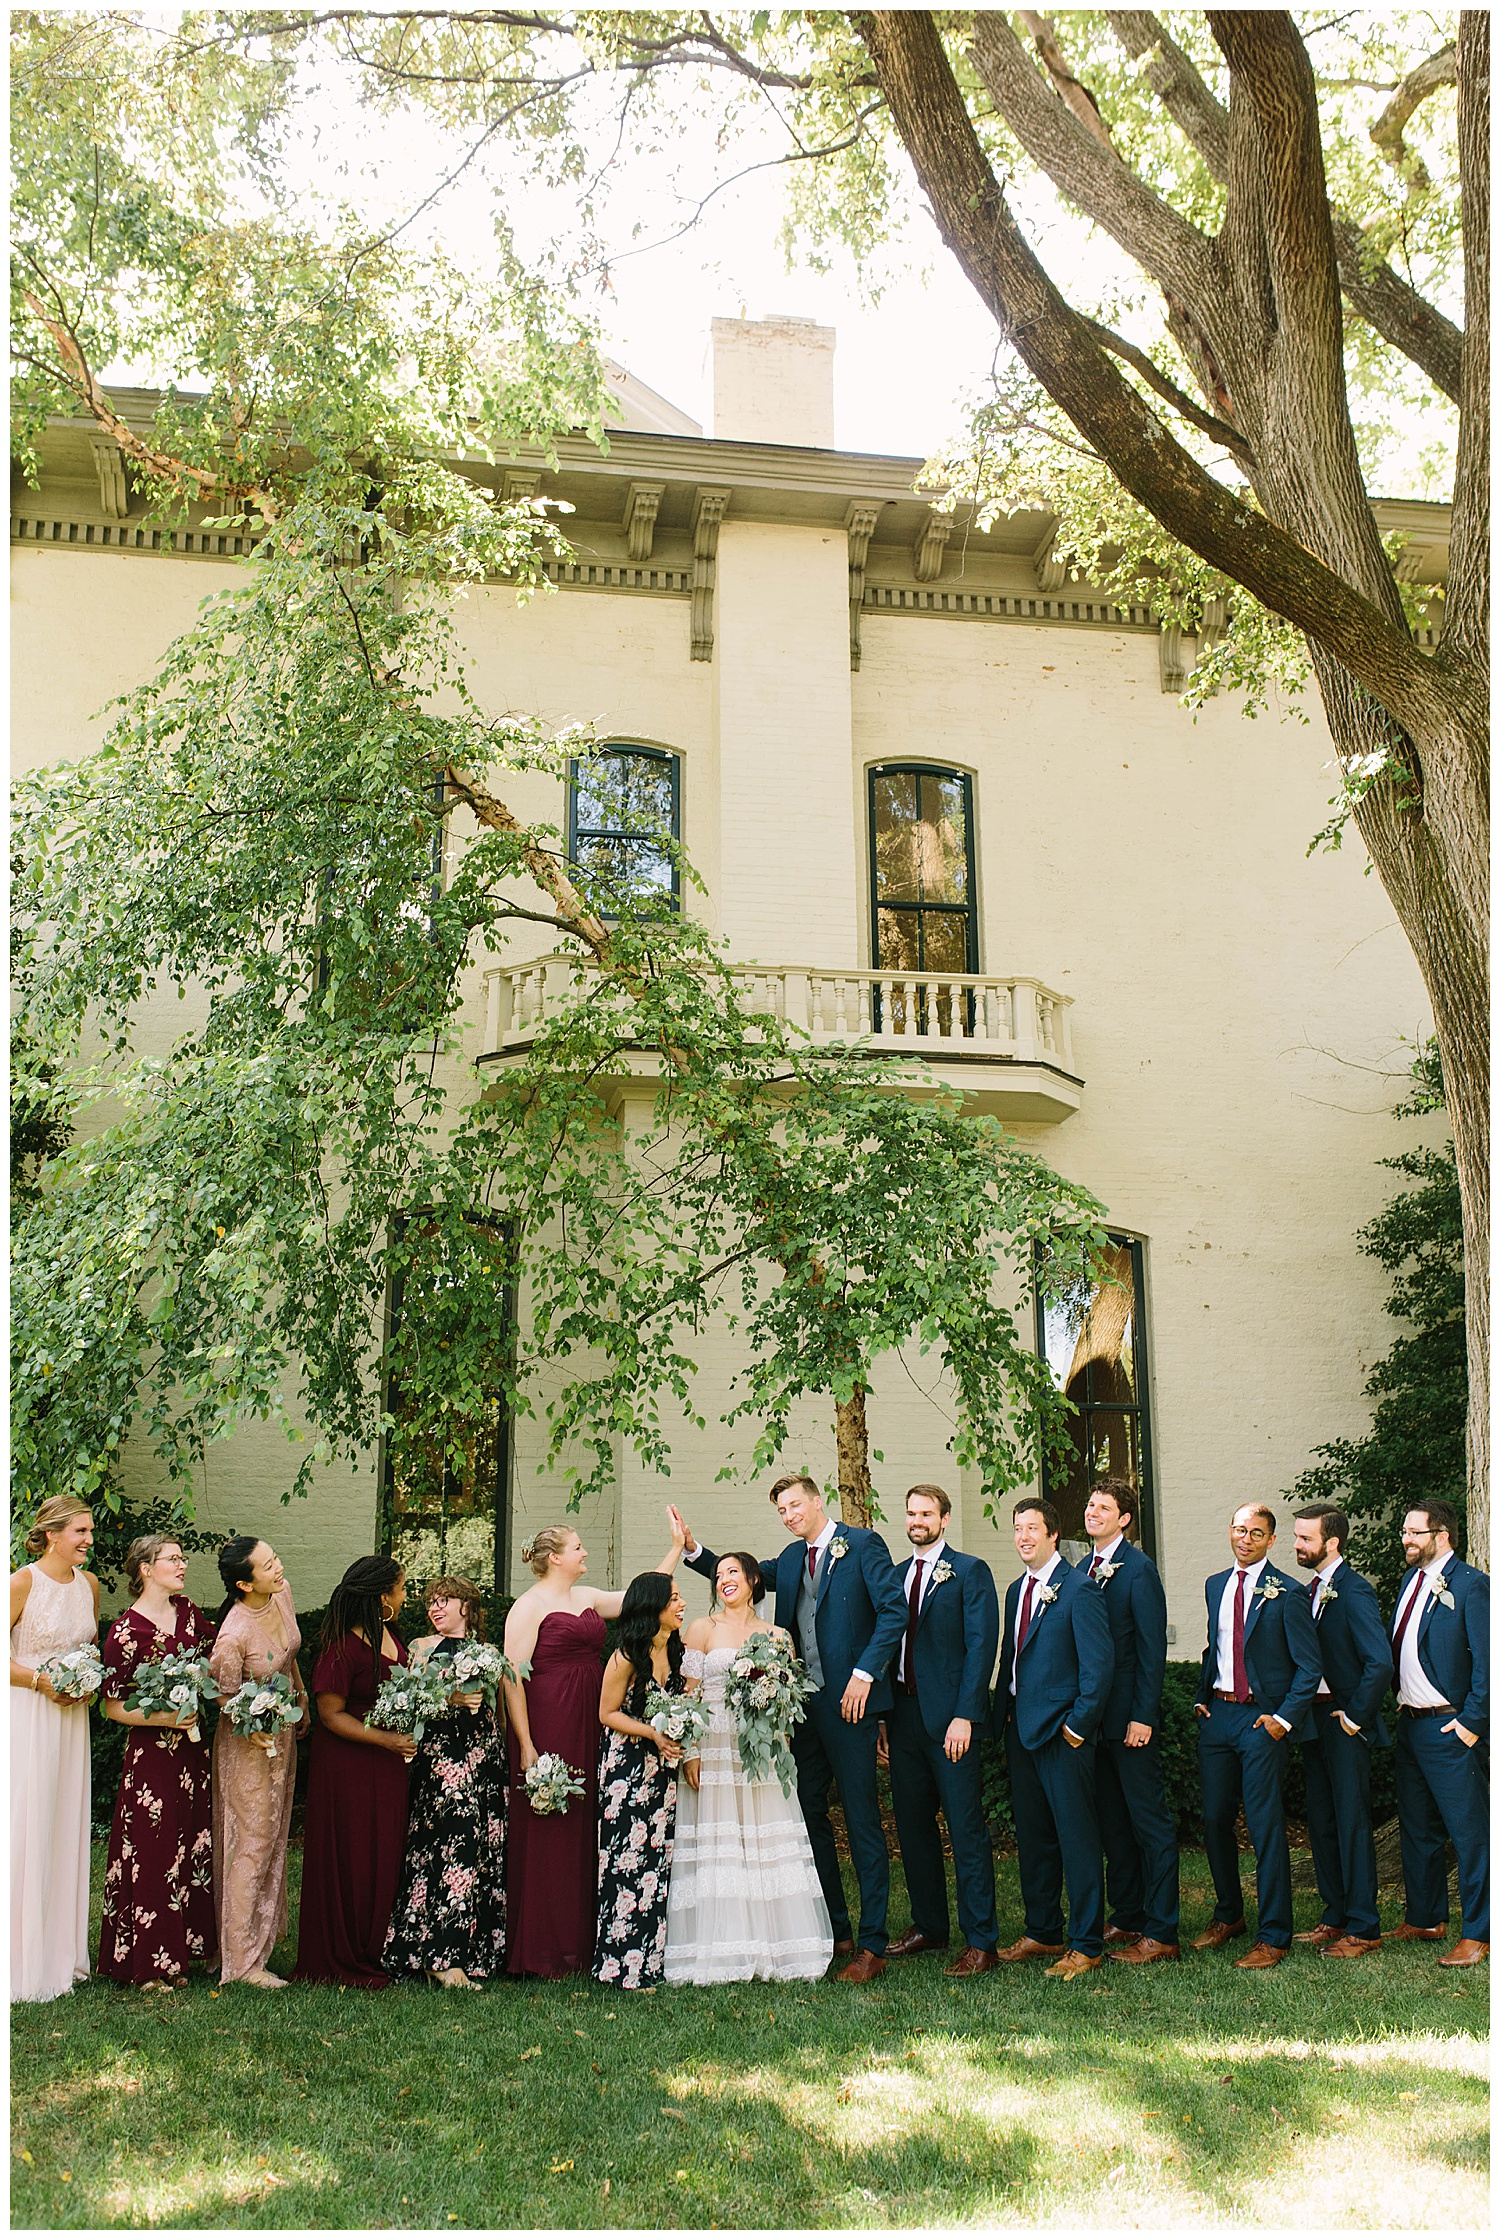 trent.and.kendra.photography.wedding.peterson.dumesnil.house-74.jpg